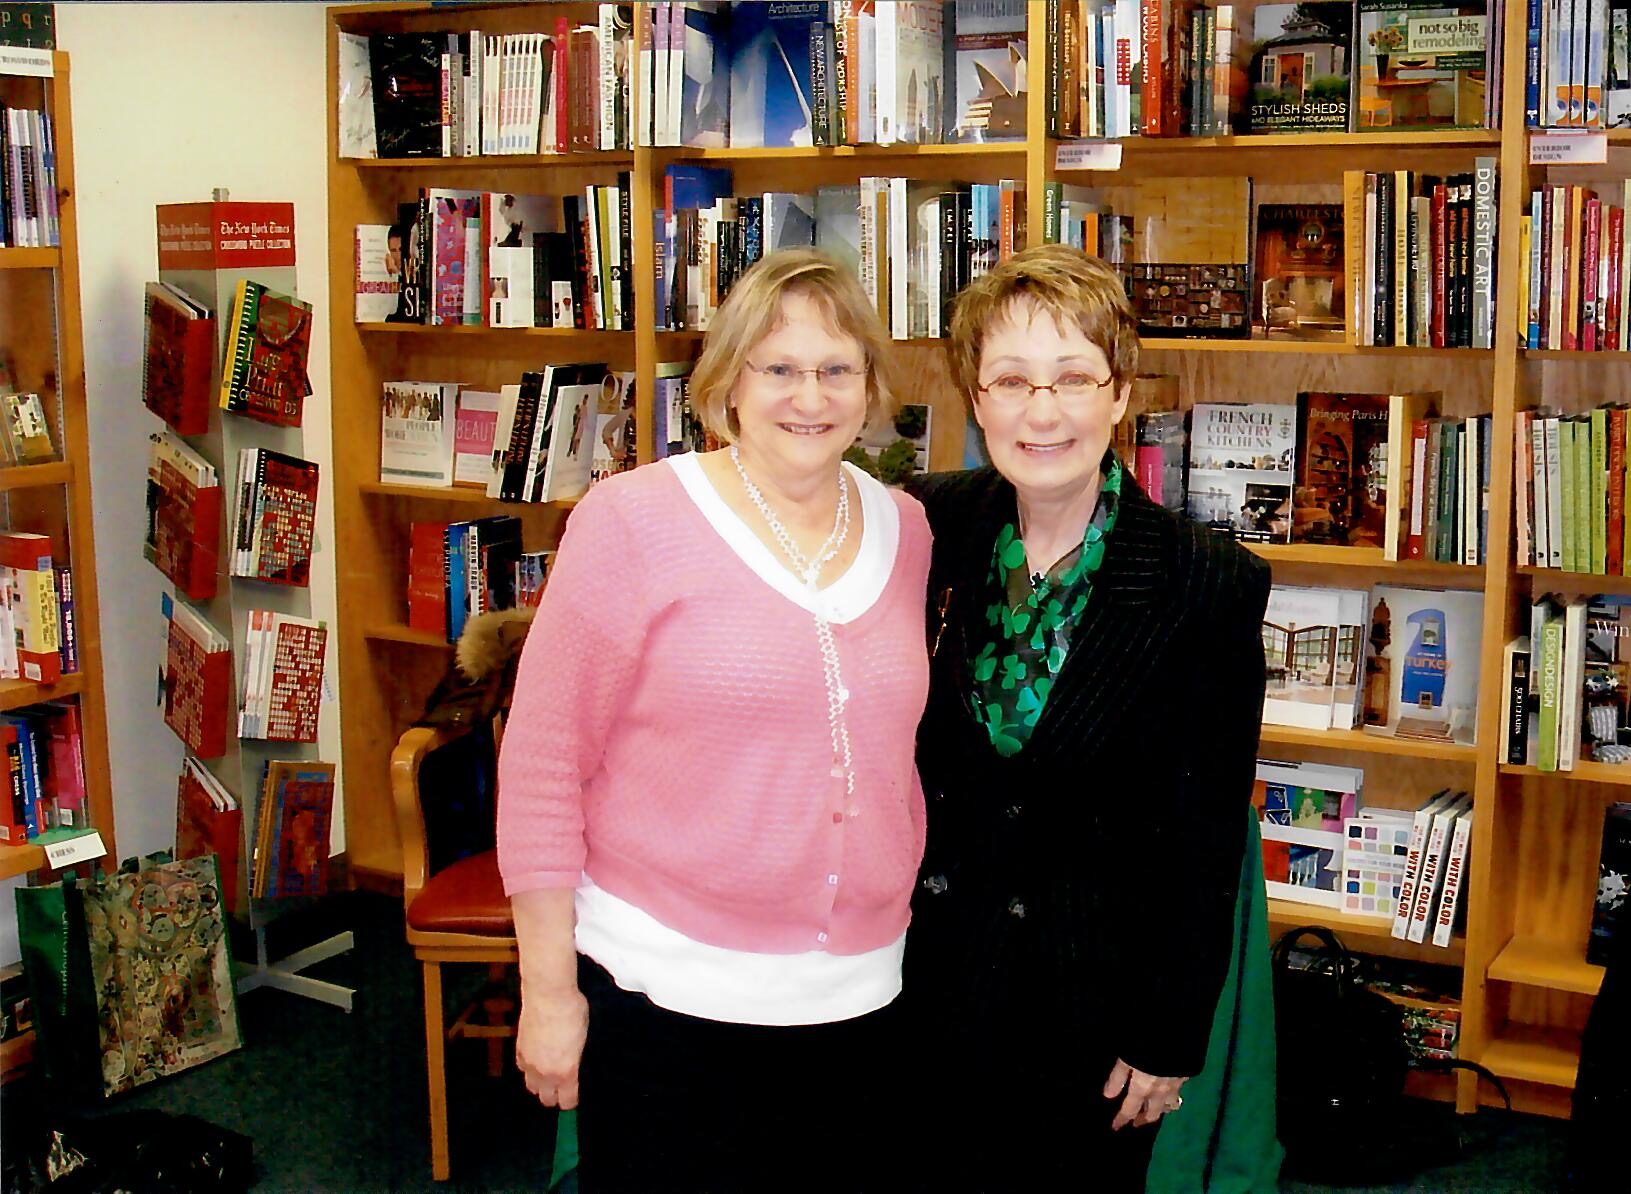 Book signing at The Book Stall in Wilmette, IL